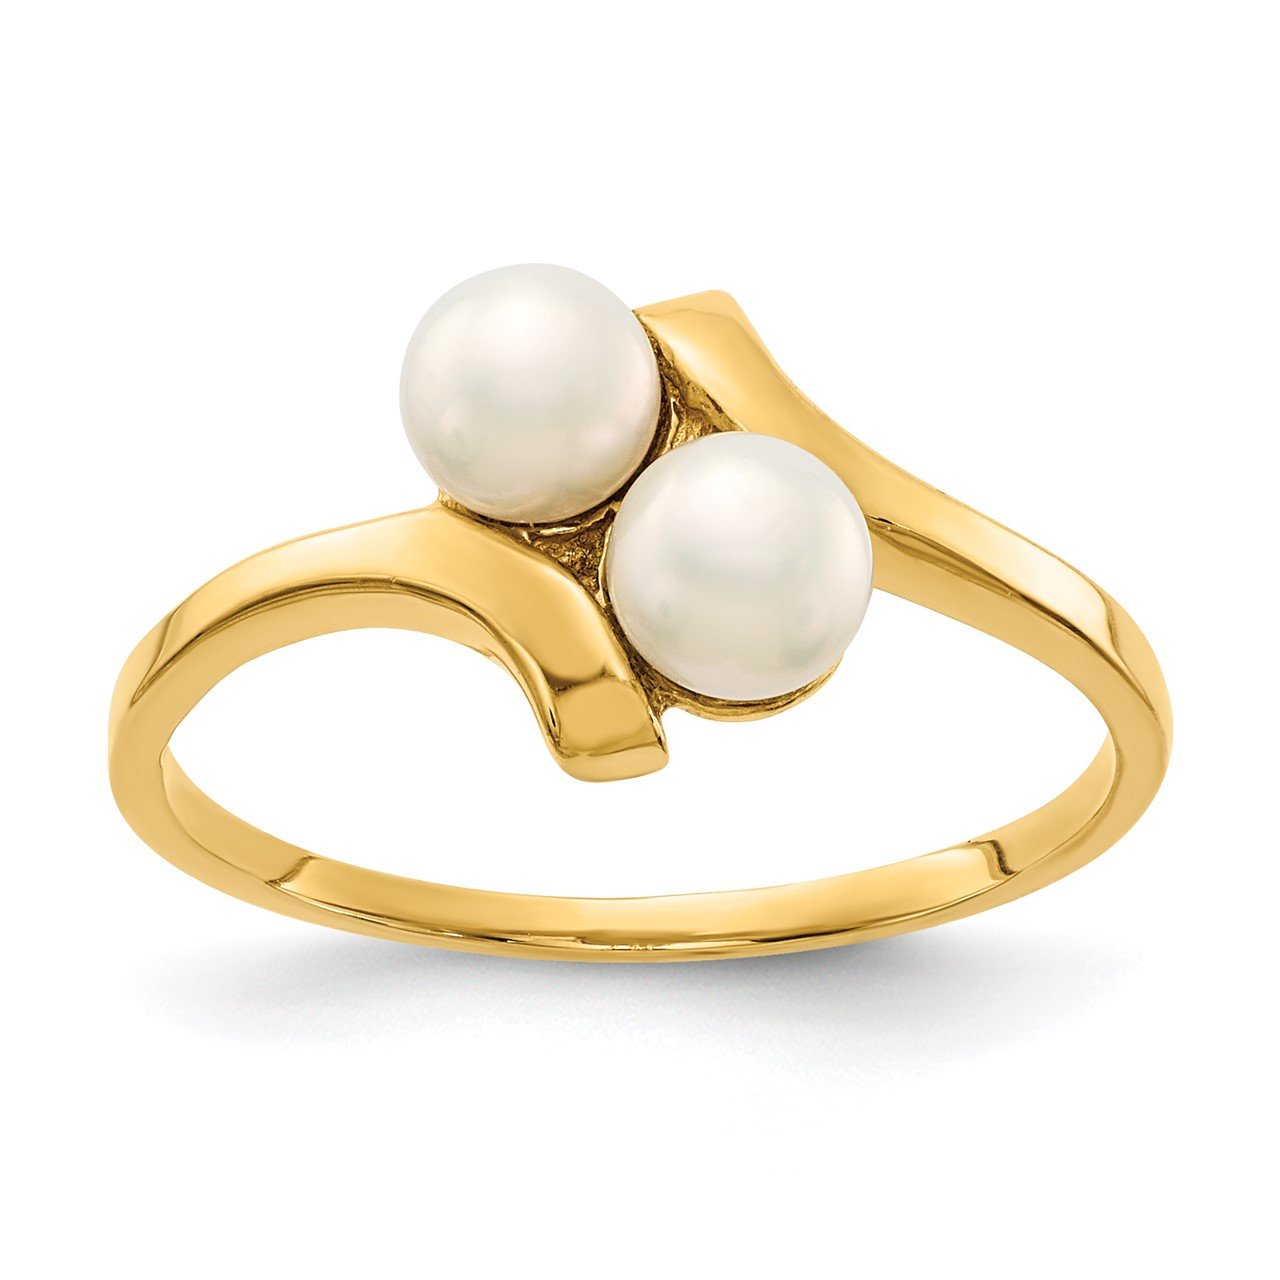 14K 4-5mm White Button Freshwater Cultured 2 Pearl Ring